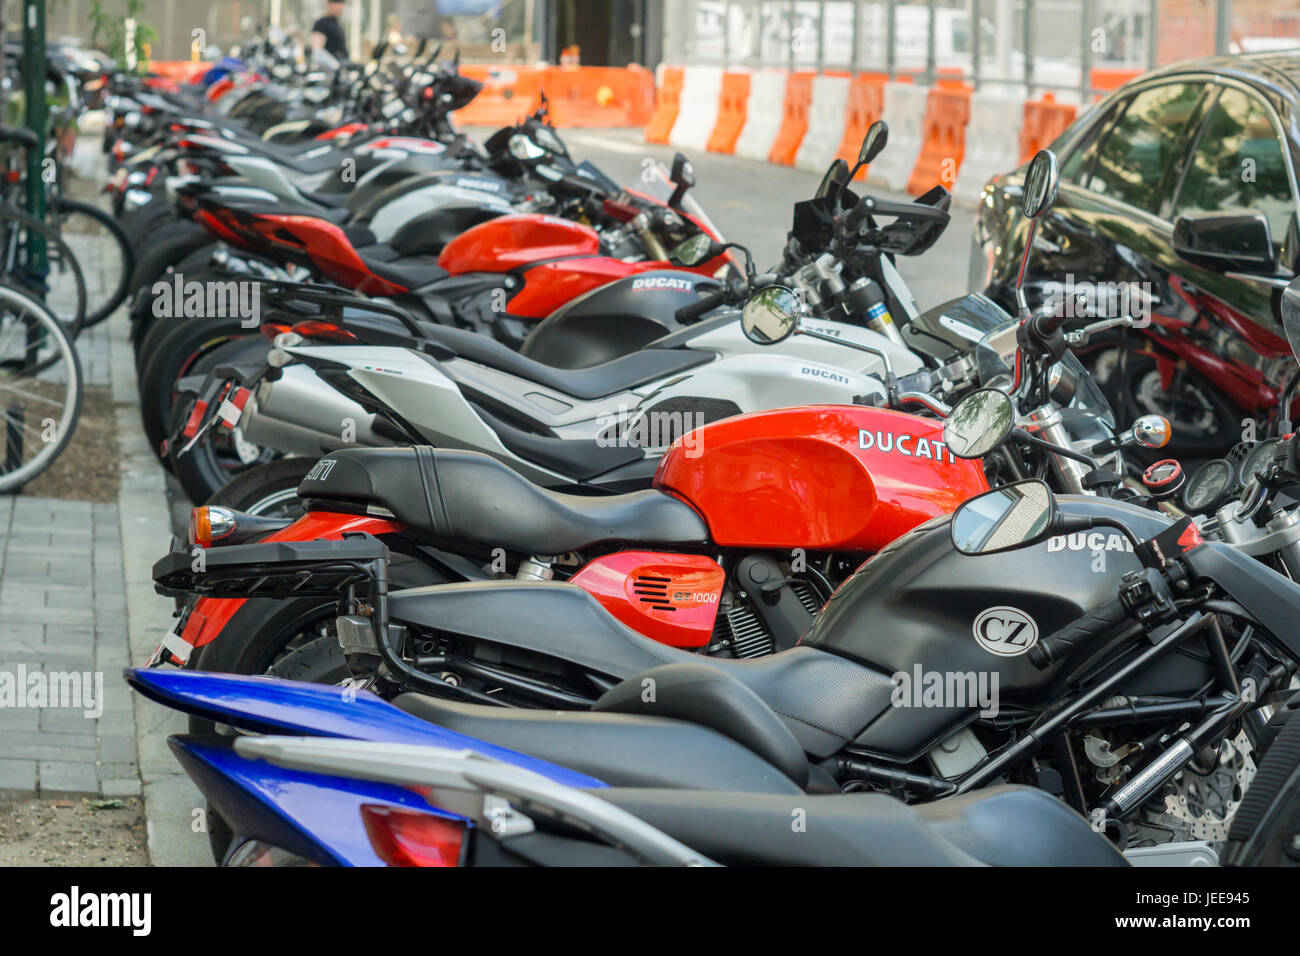 Harley Davidson Parked In Front Stockfotos & Harley Davidson Parked ...